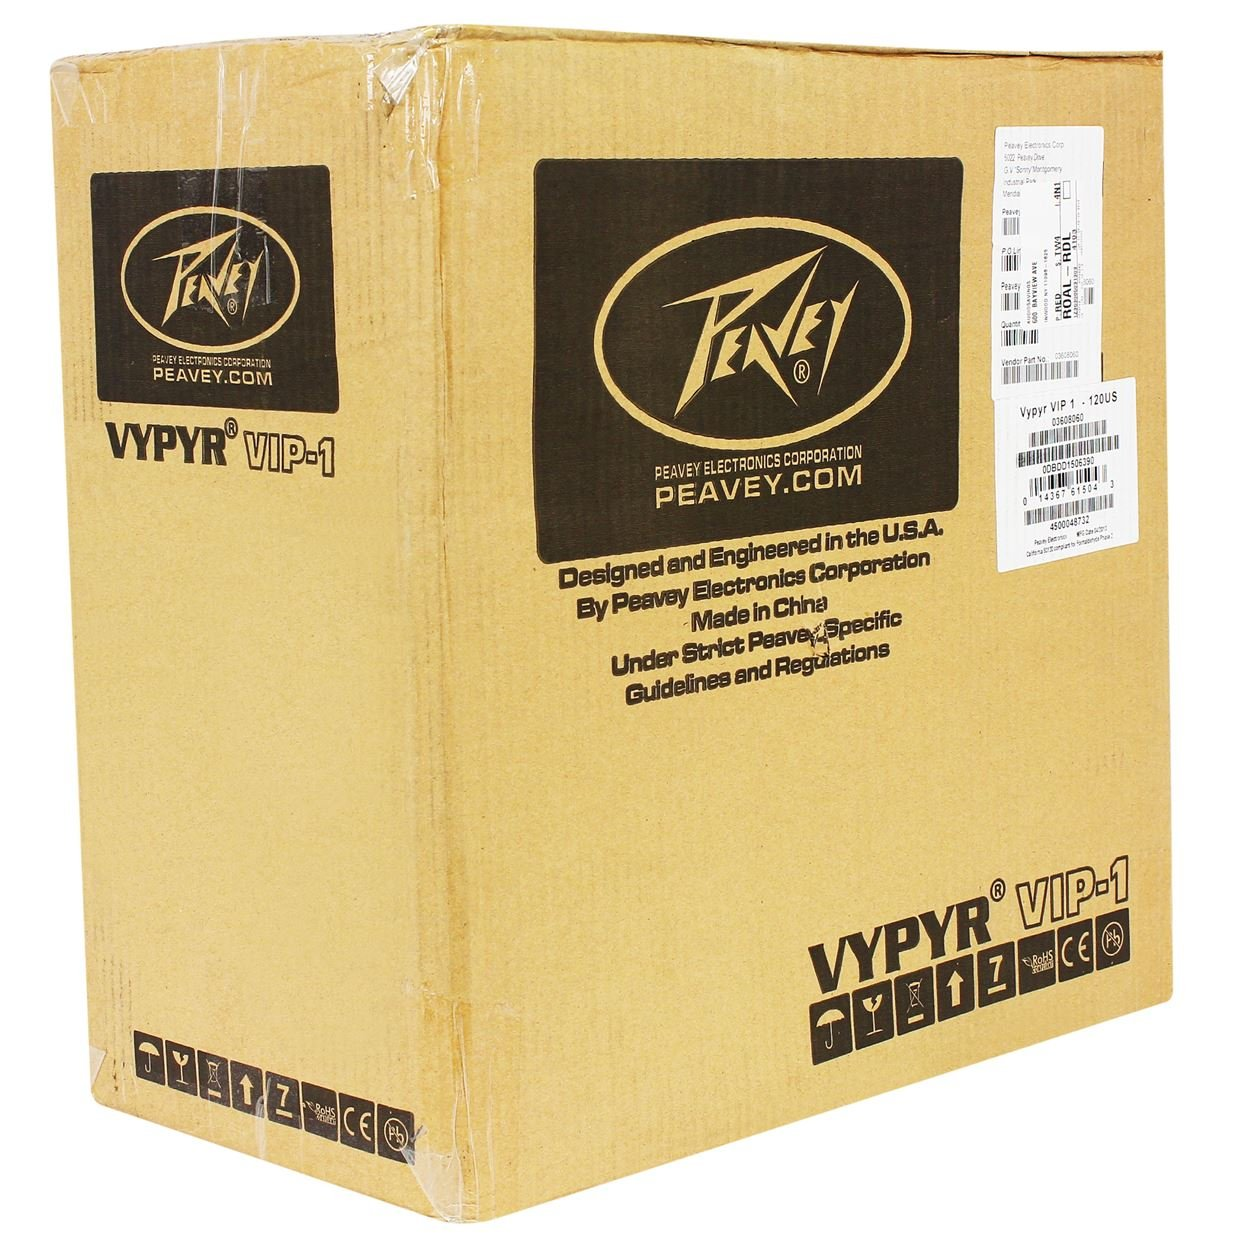 Peavey Vypyr VIP 1 20 Watt 1x8 Combo Practice Guitar Amplifier+Instrument Cable by Peavey (Image #6)